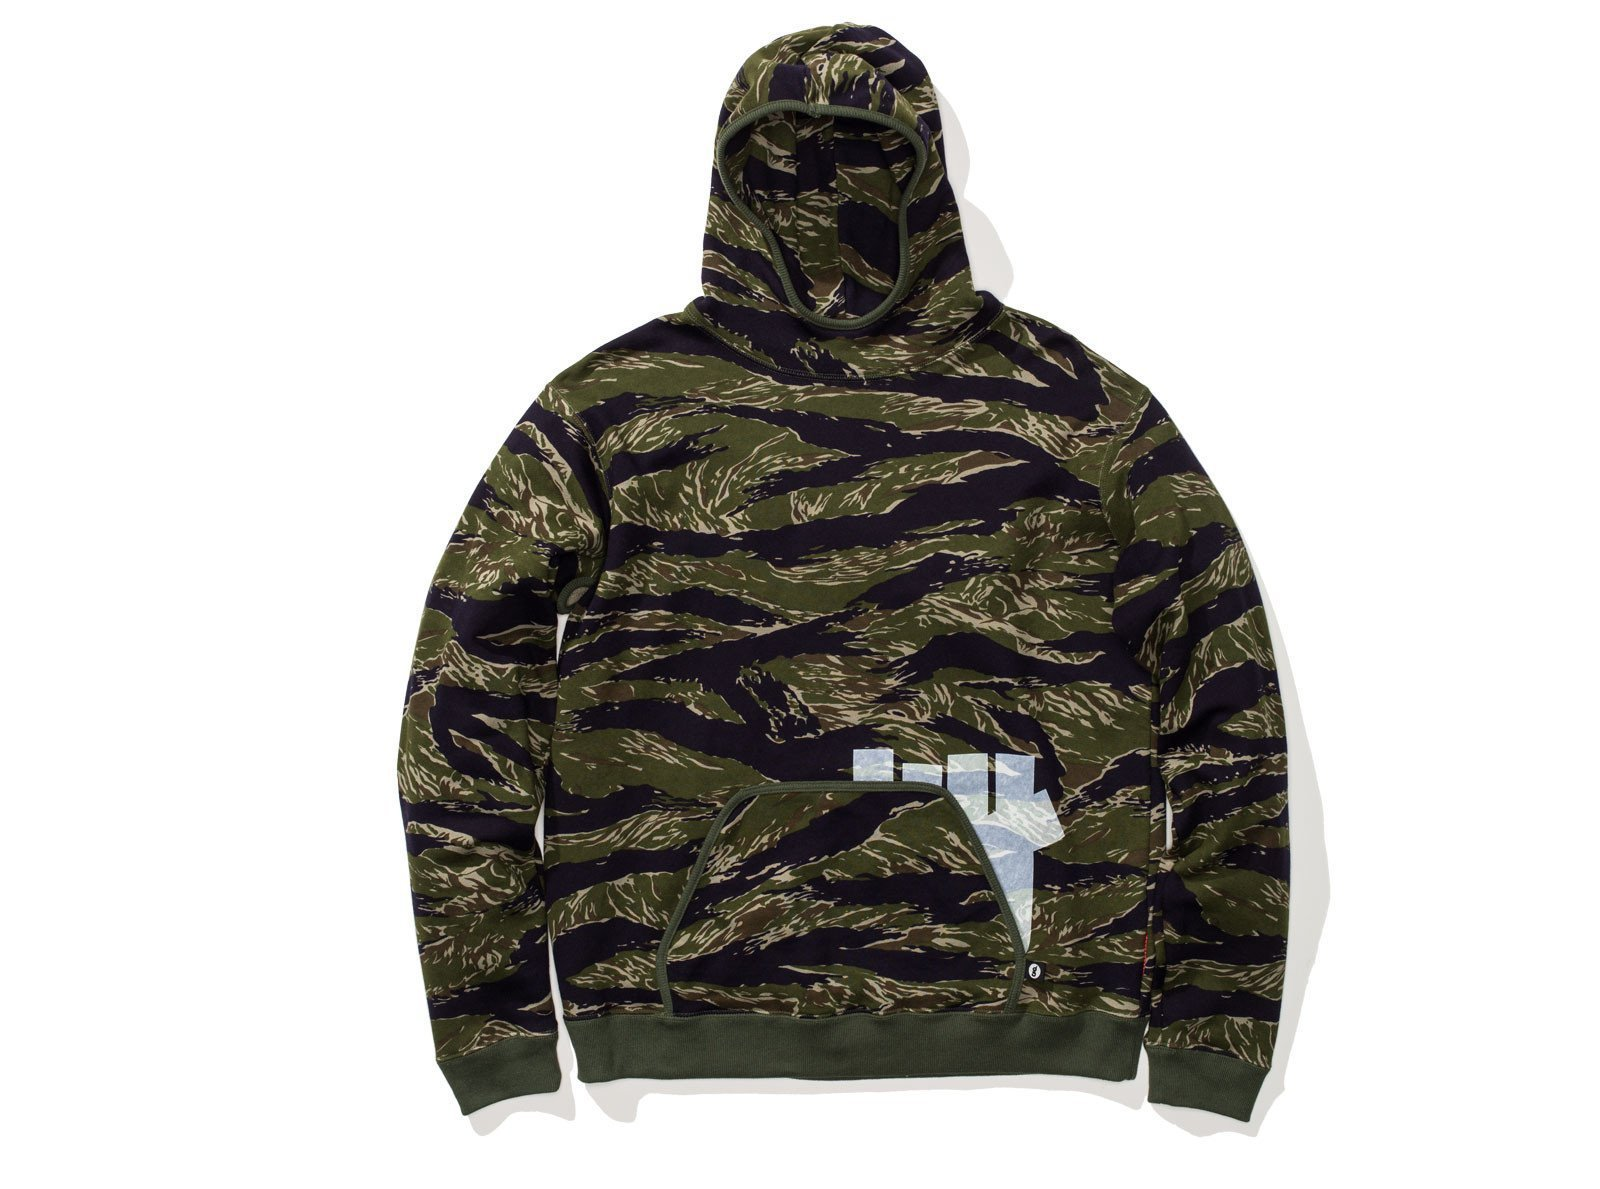 【UNDEFEATED x GOODENOUGH】☆大人気コラボ☆VENTED HOODIE